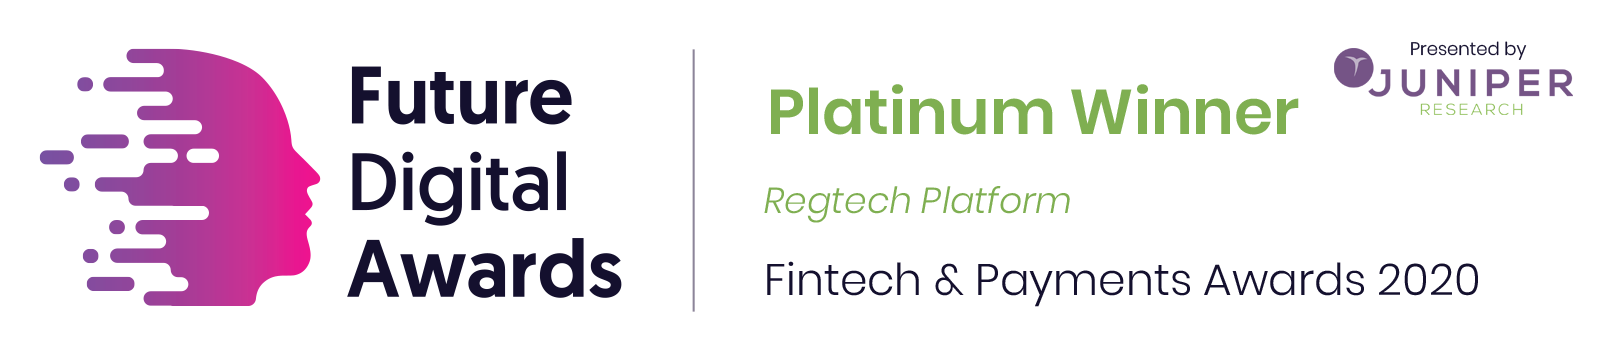 "Cappitech Awarded ""RegTech Platform Platinum"" Winner In Future Digital Awards"